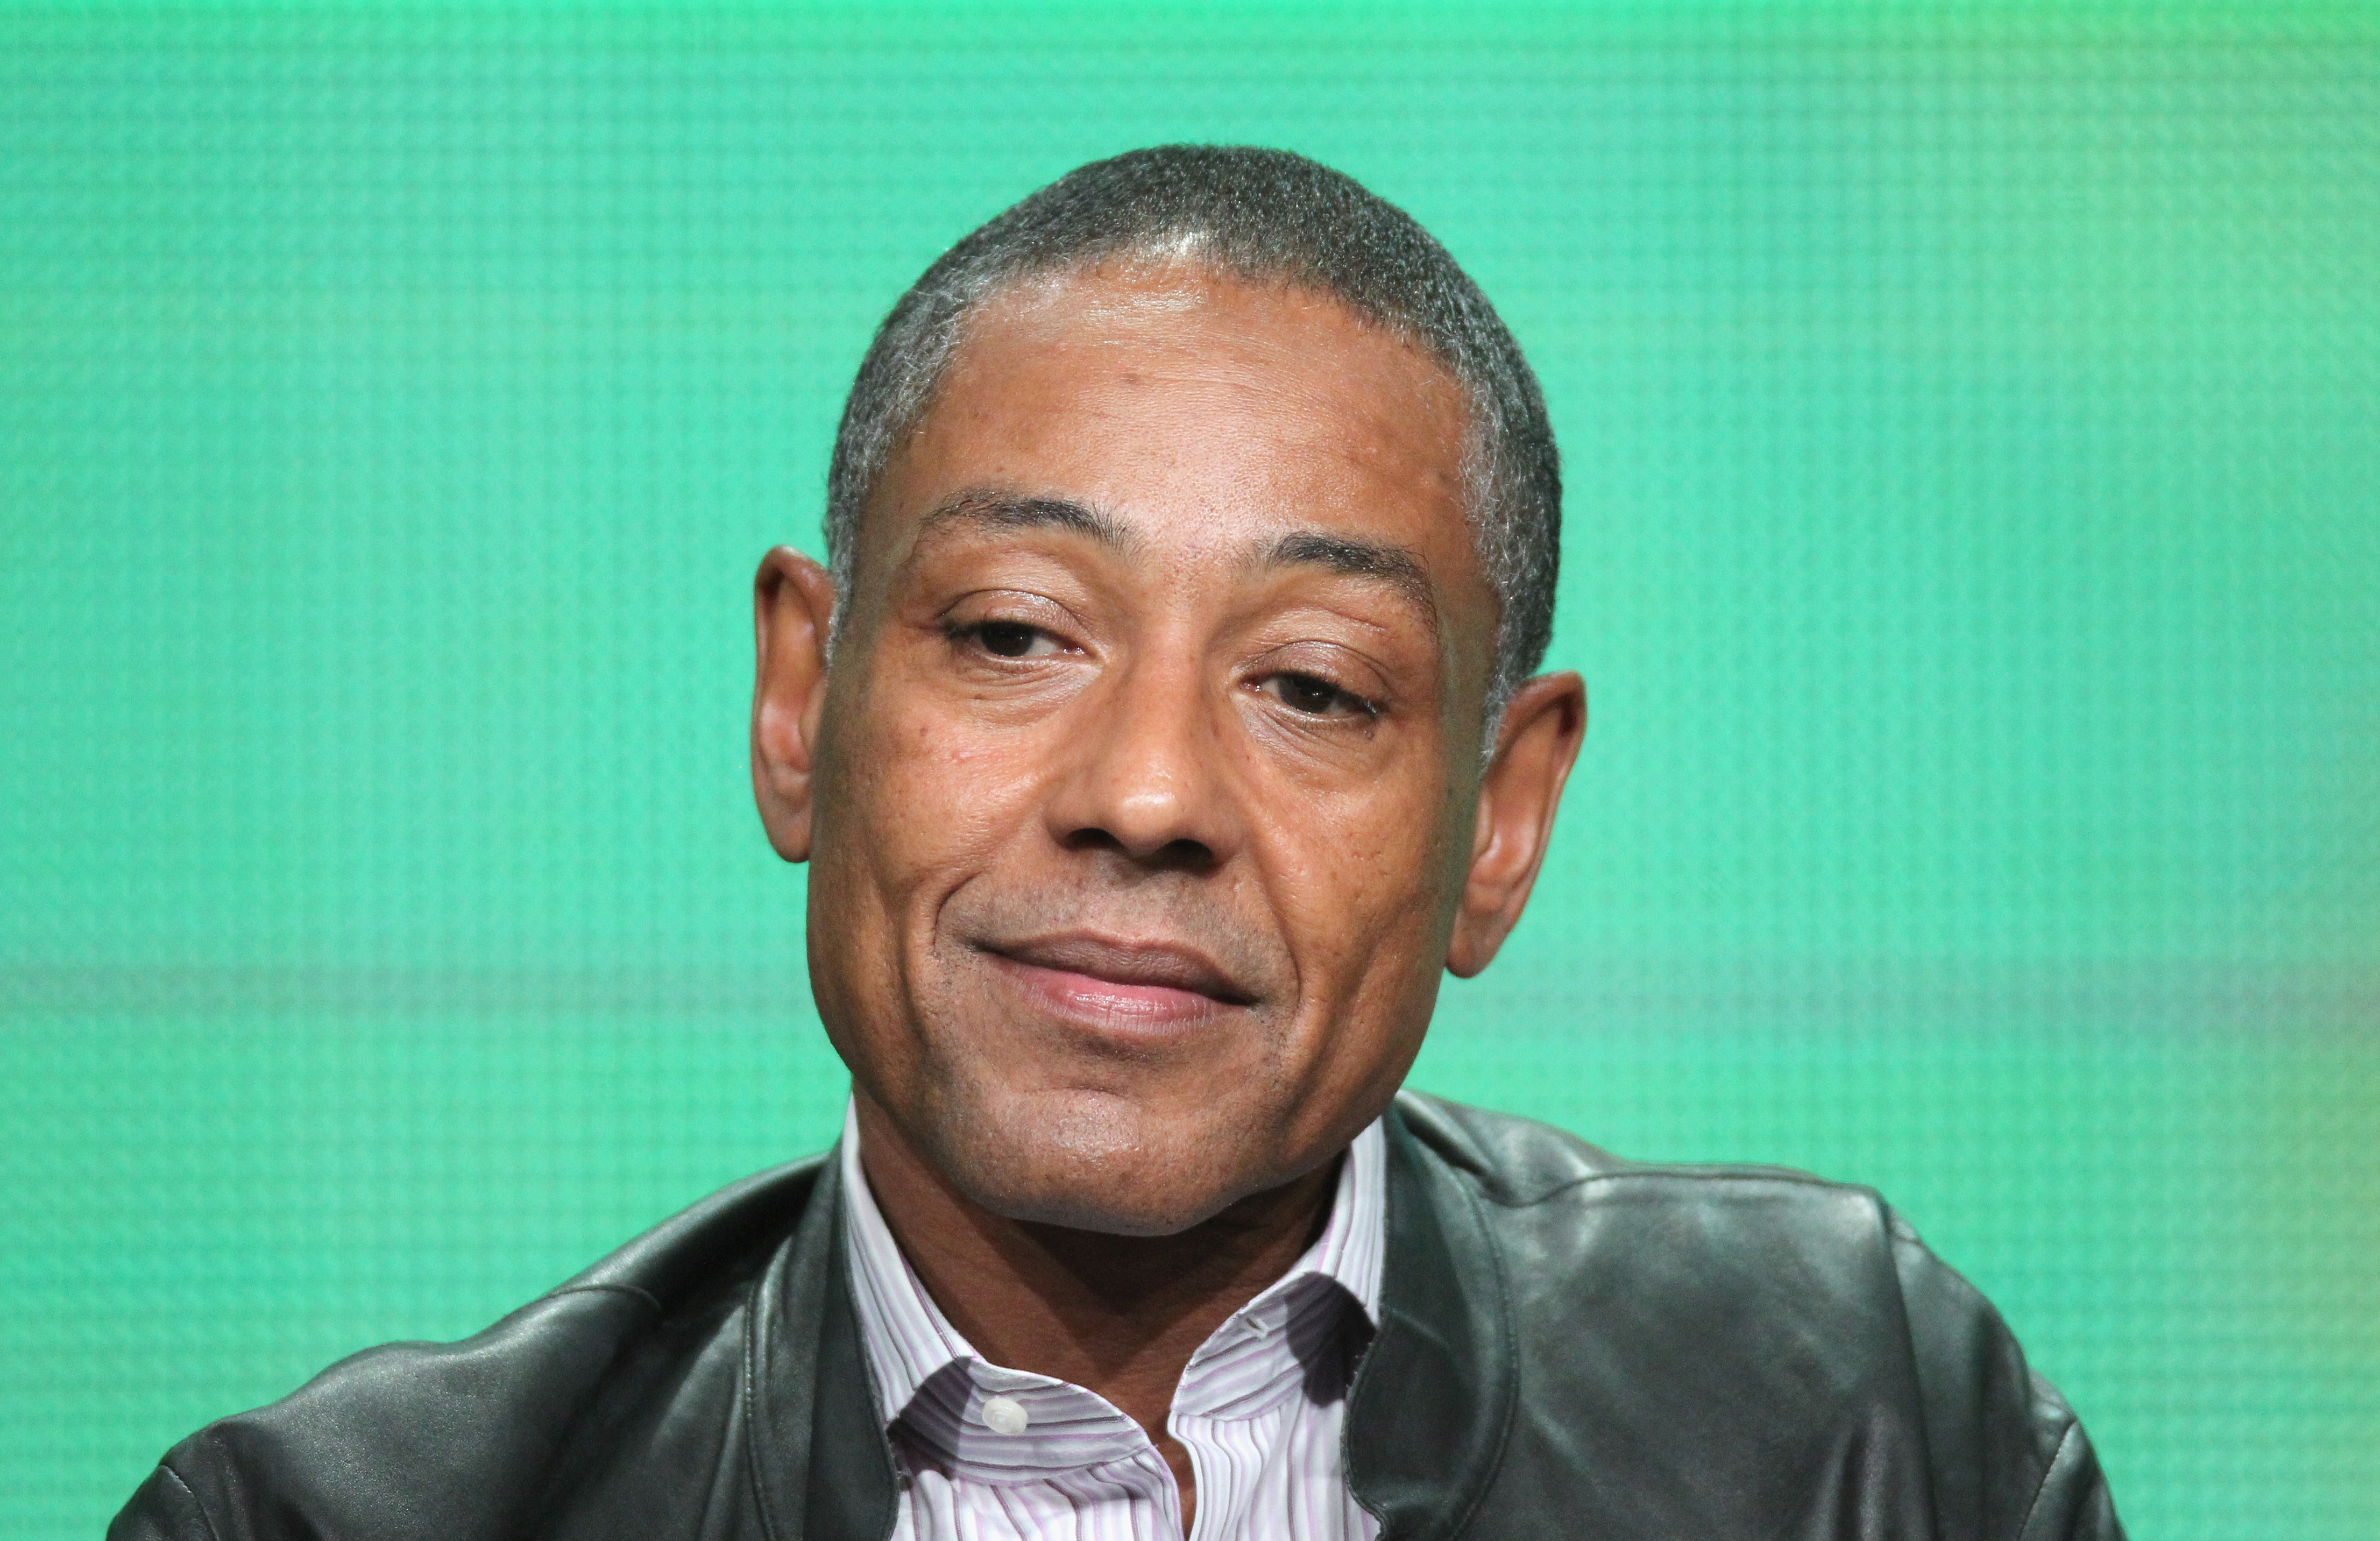 Giancarlo Esposito field questions form the press about Revolution during the discussion.